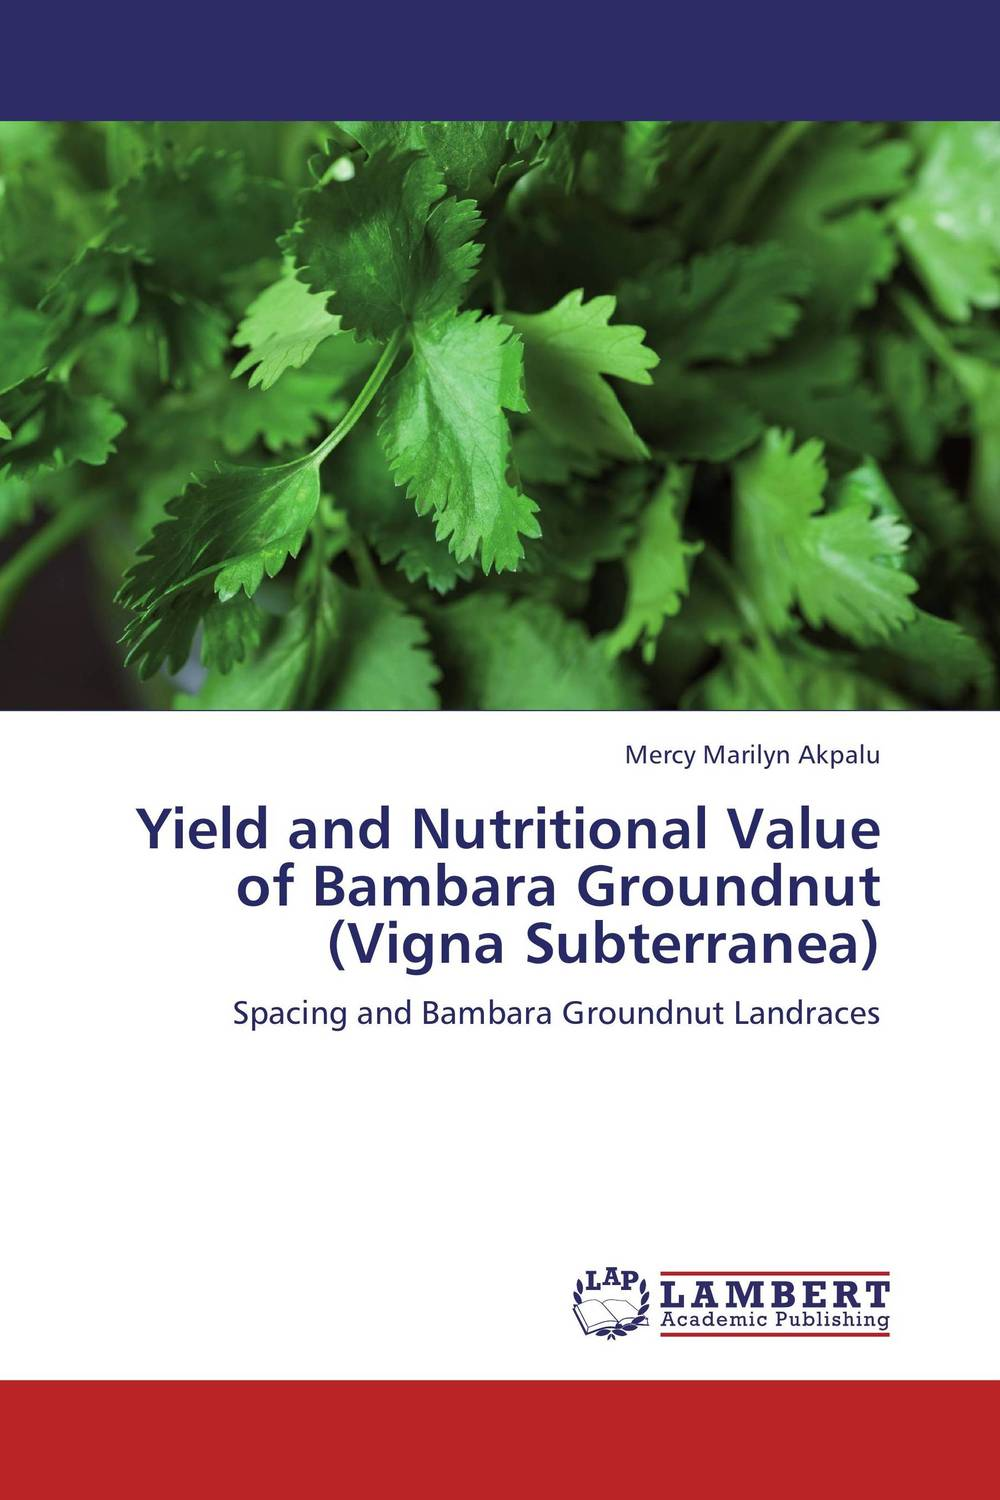 Yield and Nutritional Value of Bambara Groundnut (Vigna Subterranea)